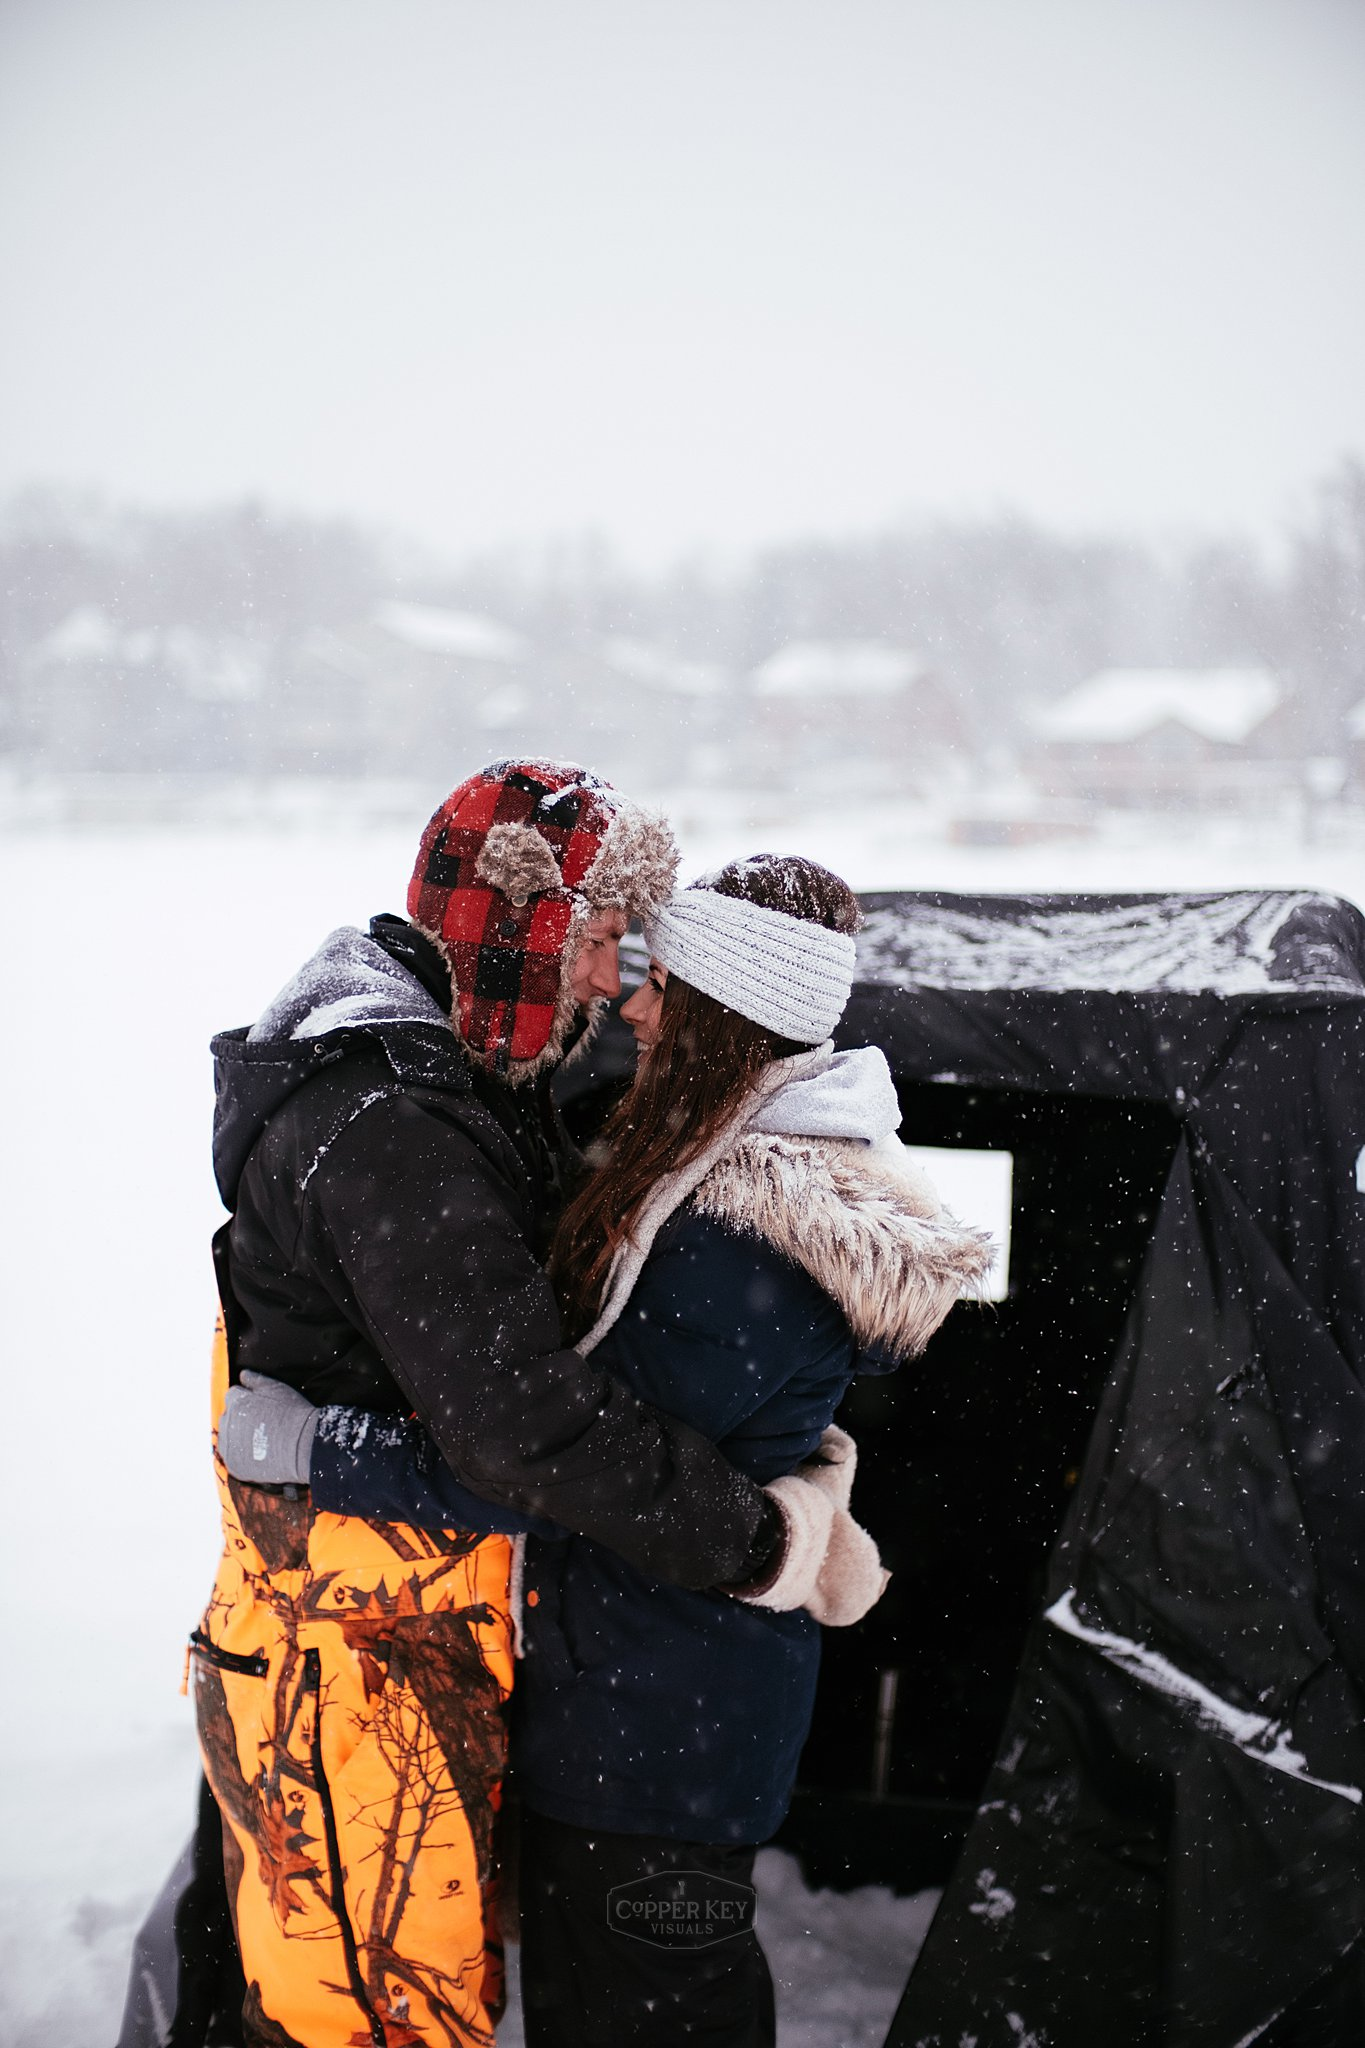 Copper Key Visuals Wisconsin Ice Fishing Engagement Session-2.jpg